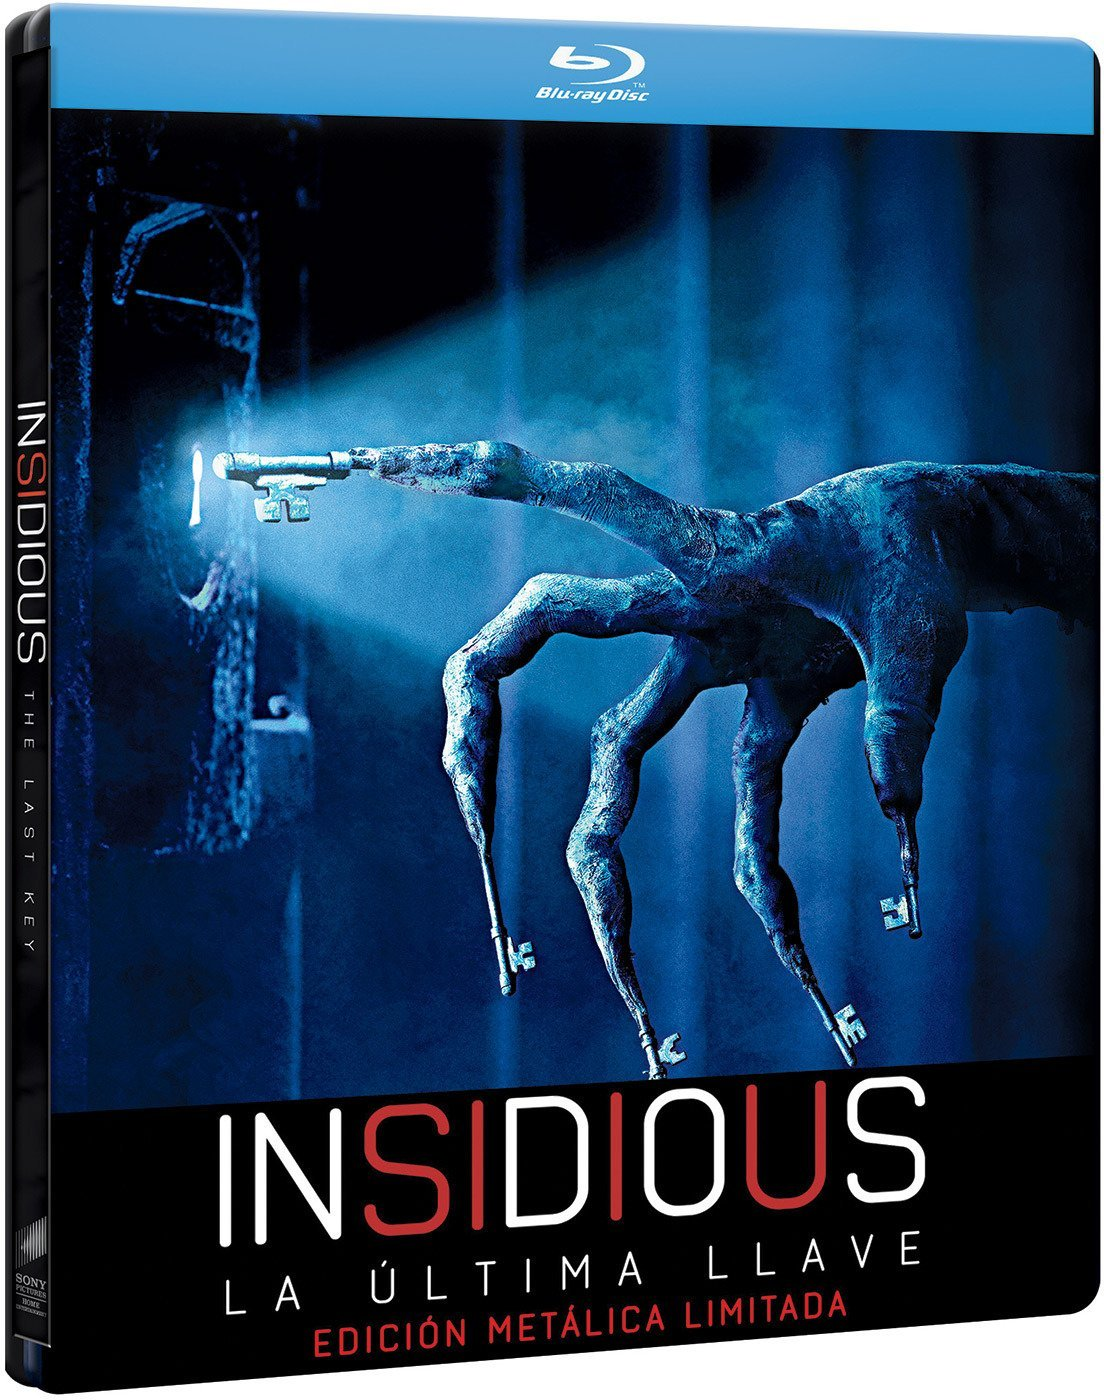 Insidious The Last Key steelbook